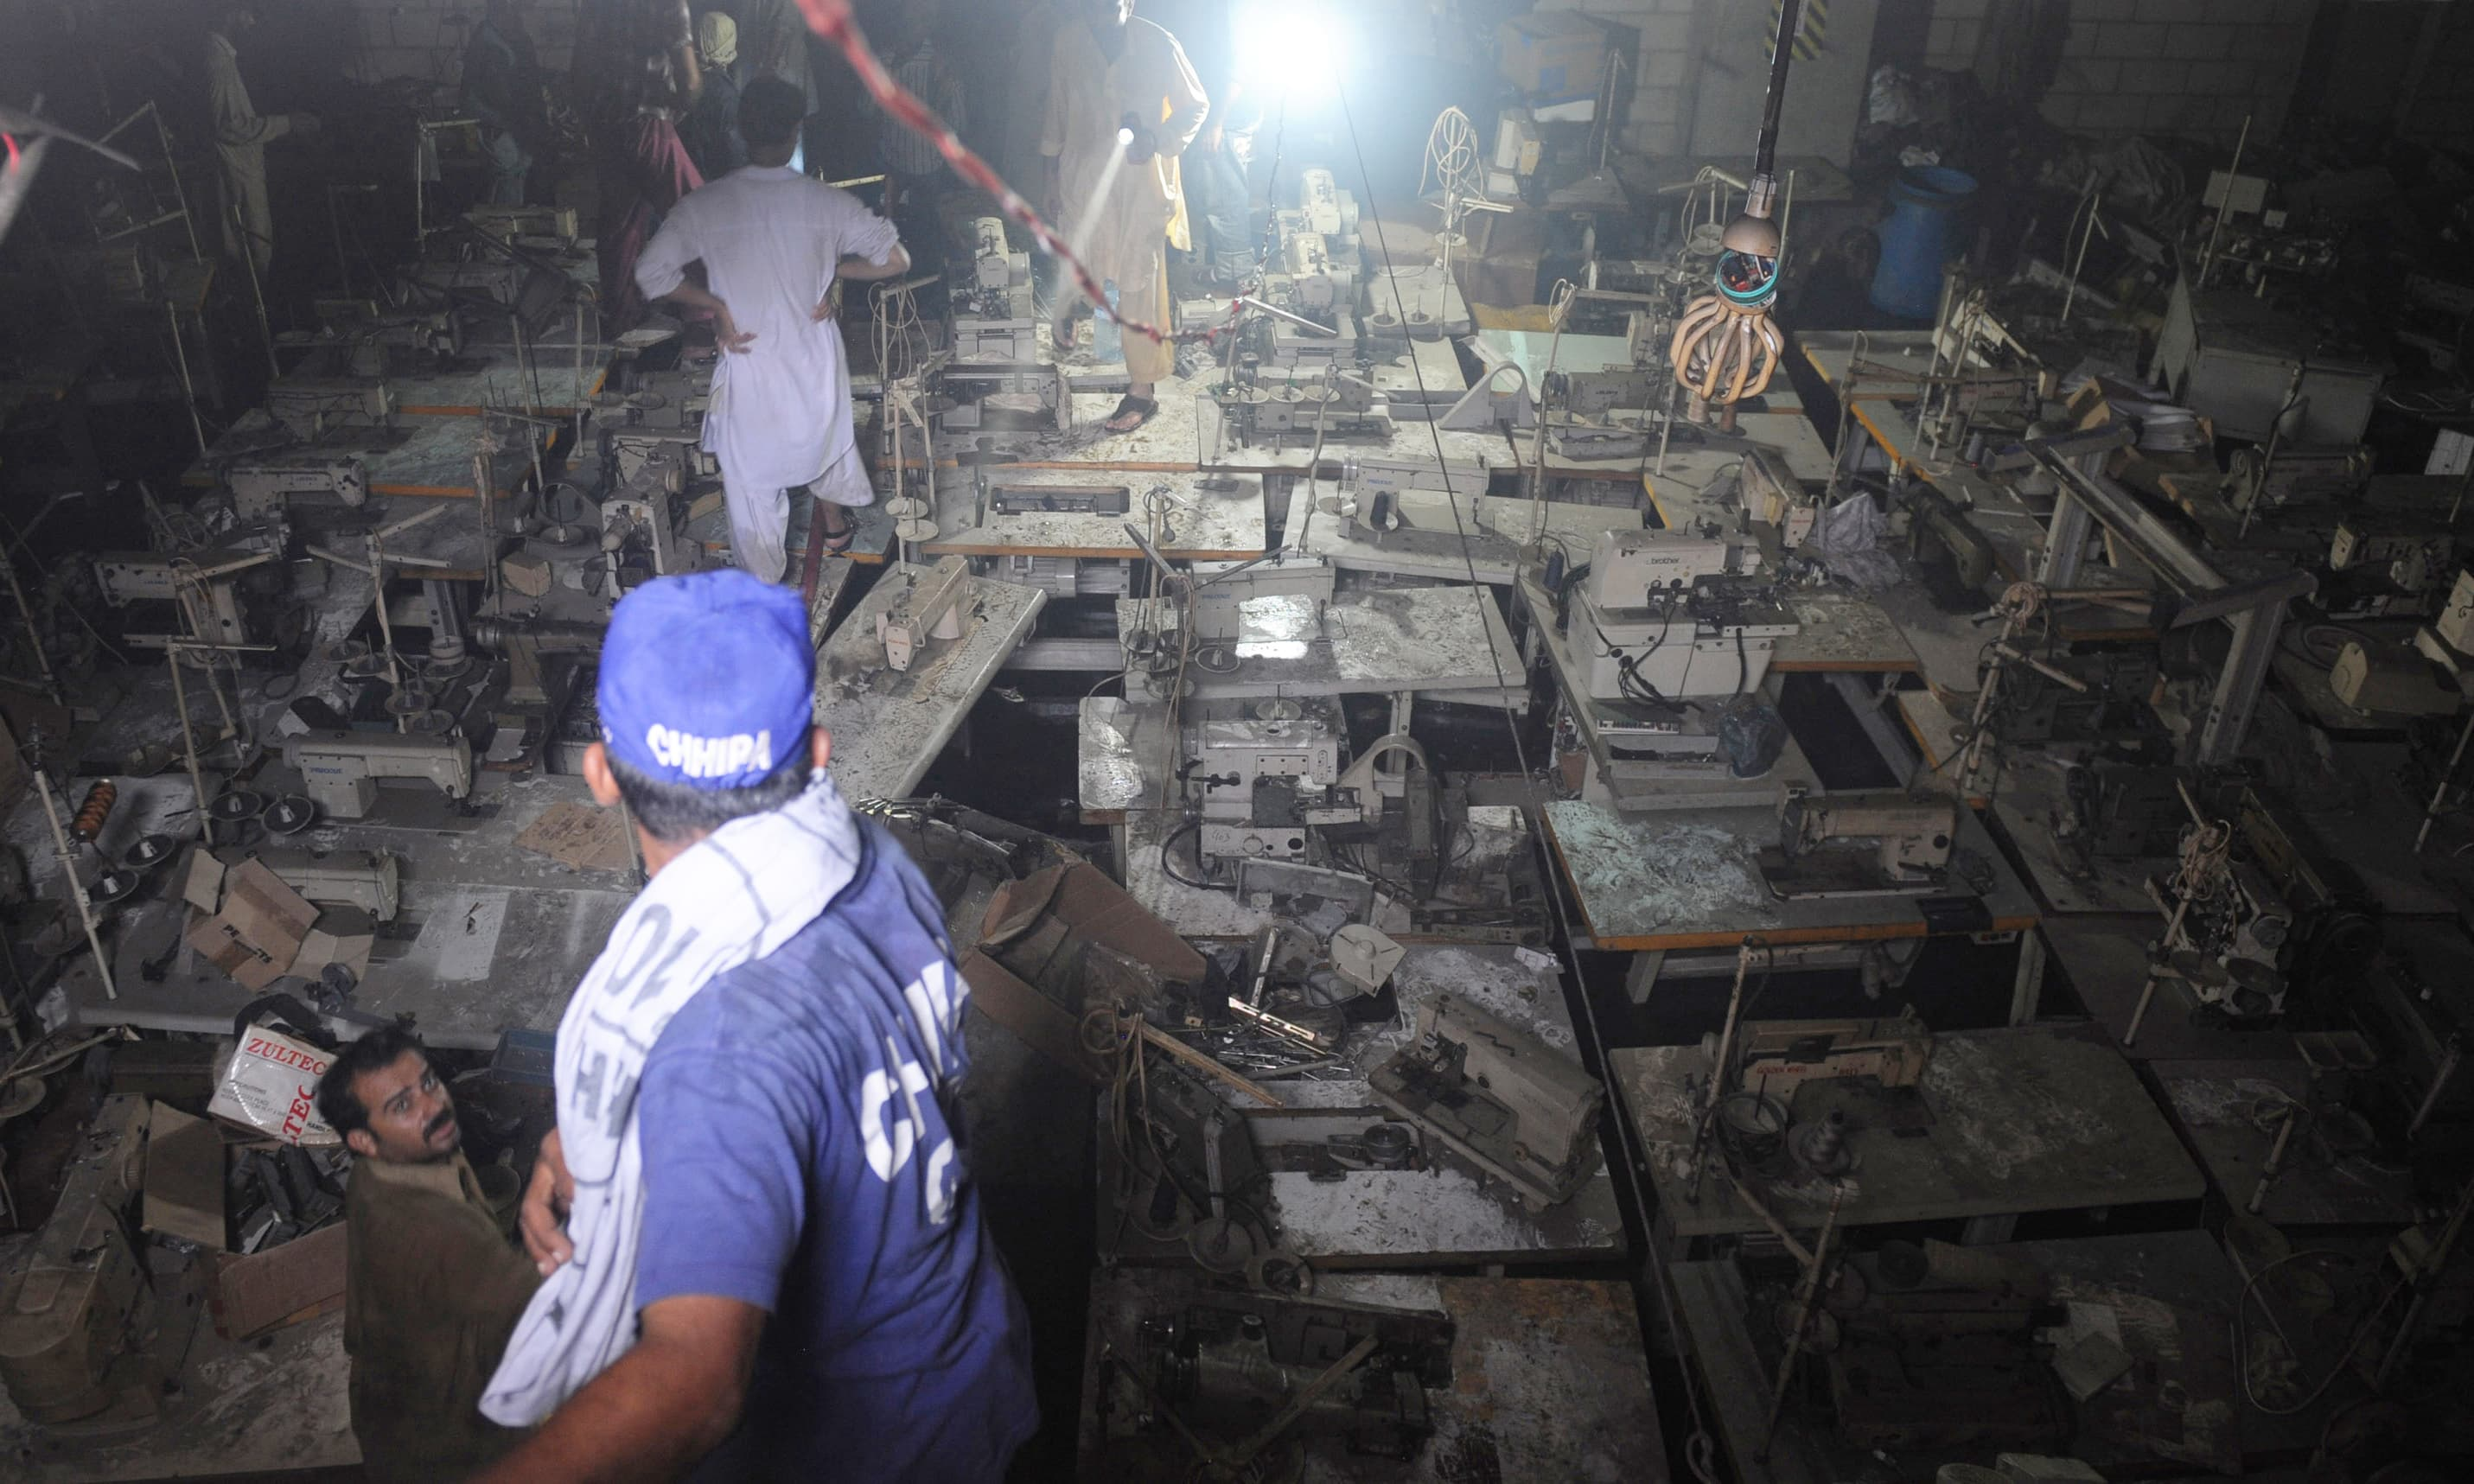 Rescue officials work inside the charred factory. —AFP/File